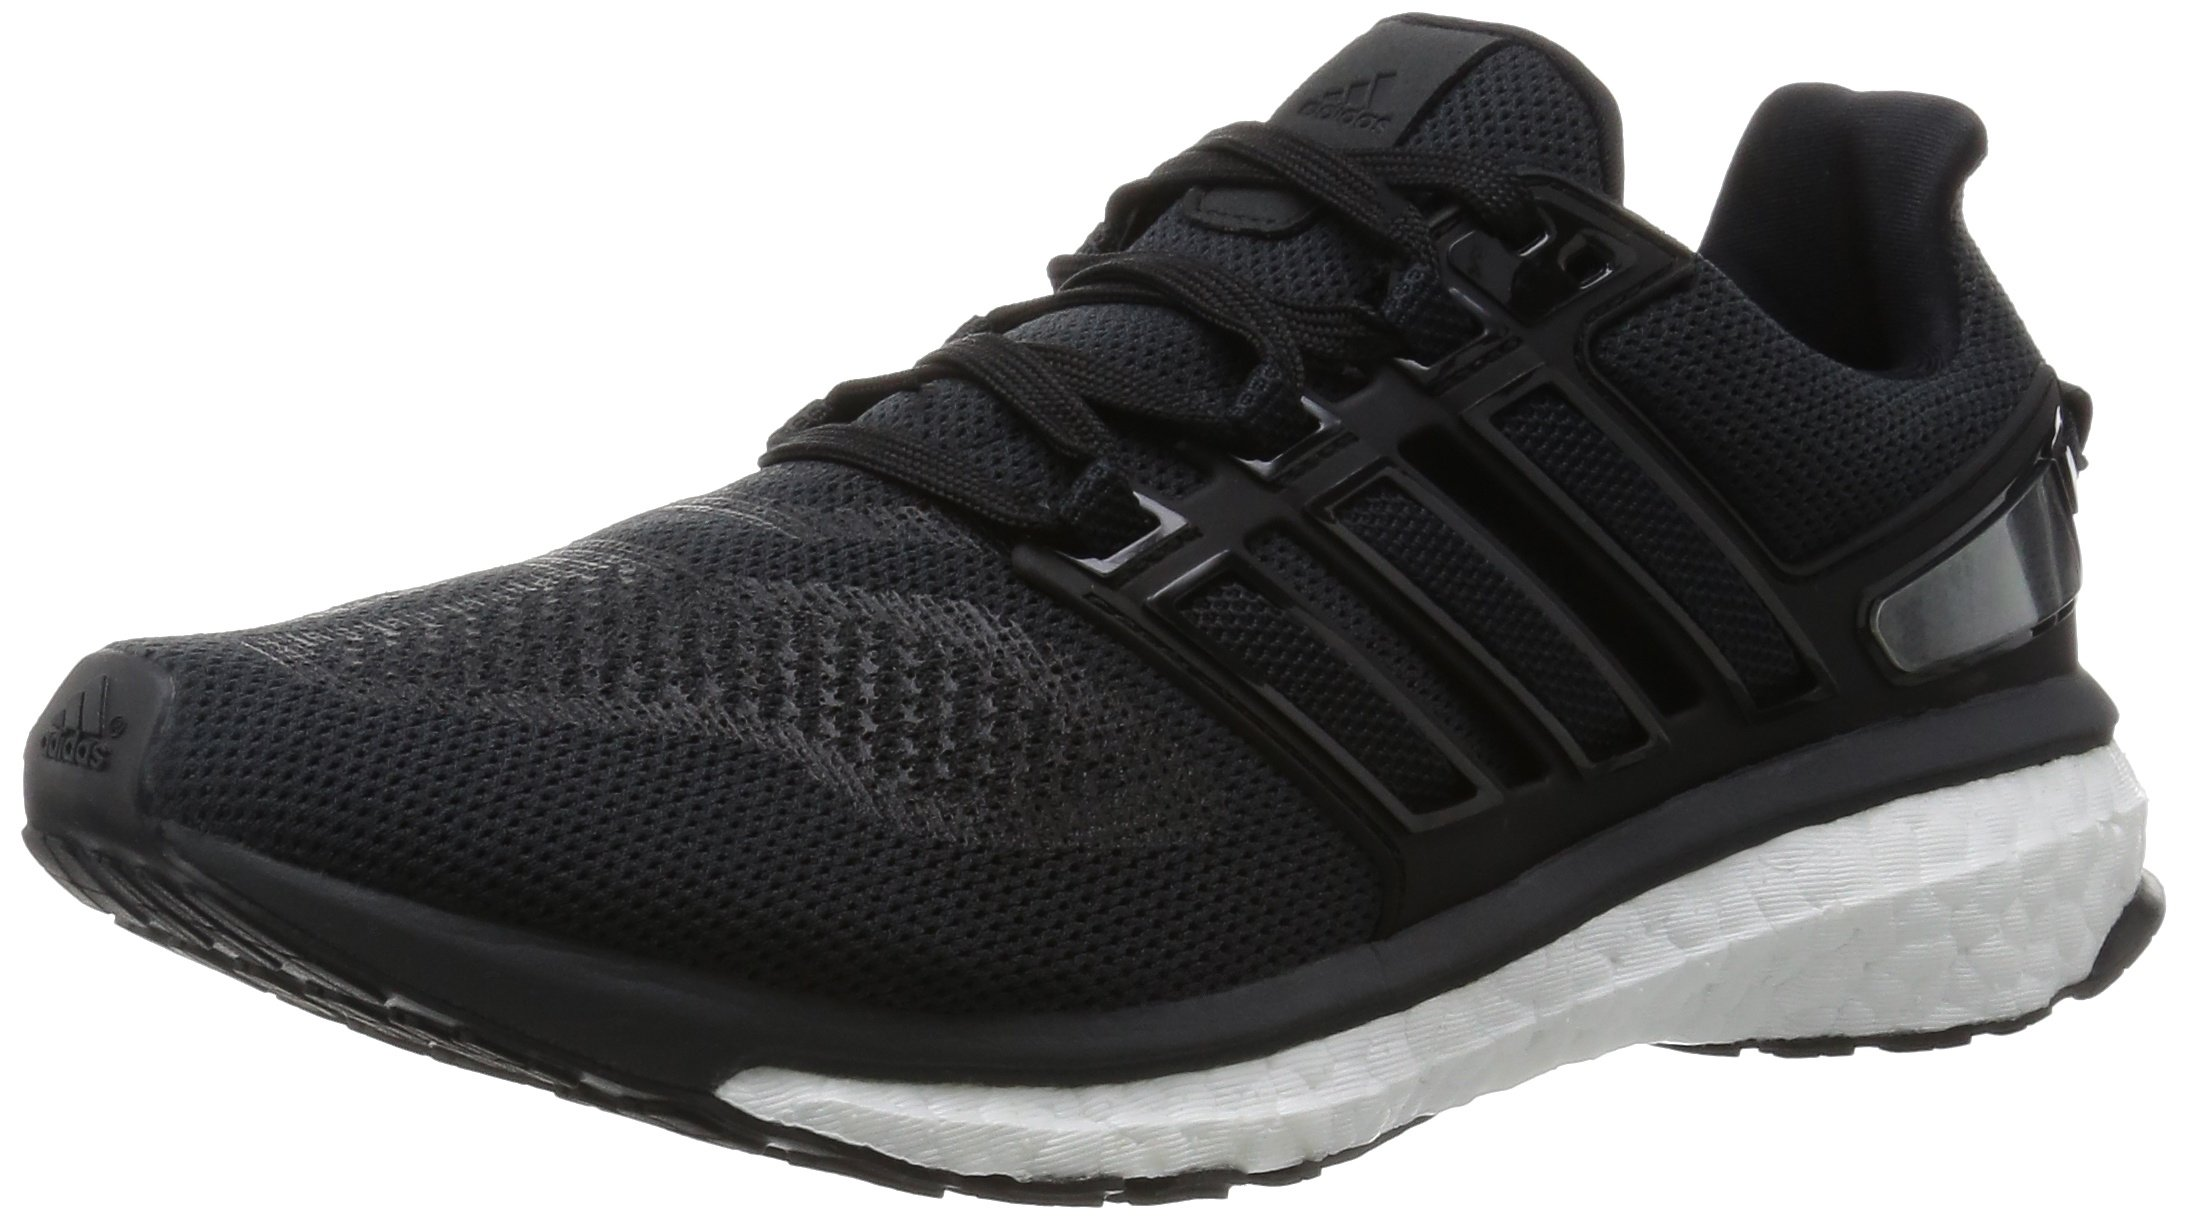 adidas mens energy boost 3 running shoes 7 5 uk new ebay. Black Bedroom Furniture Sets. Home Design Ideas